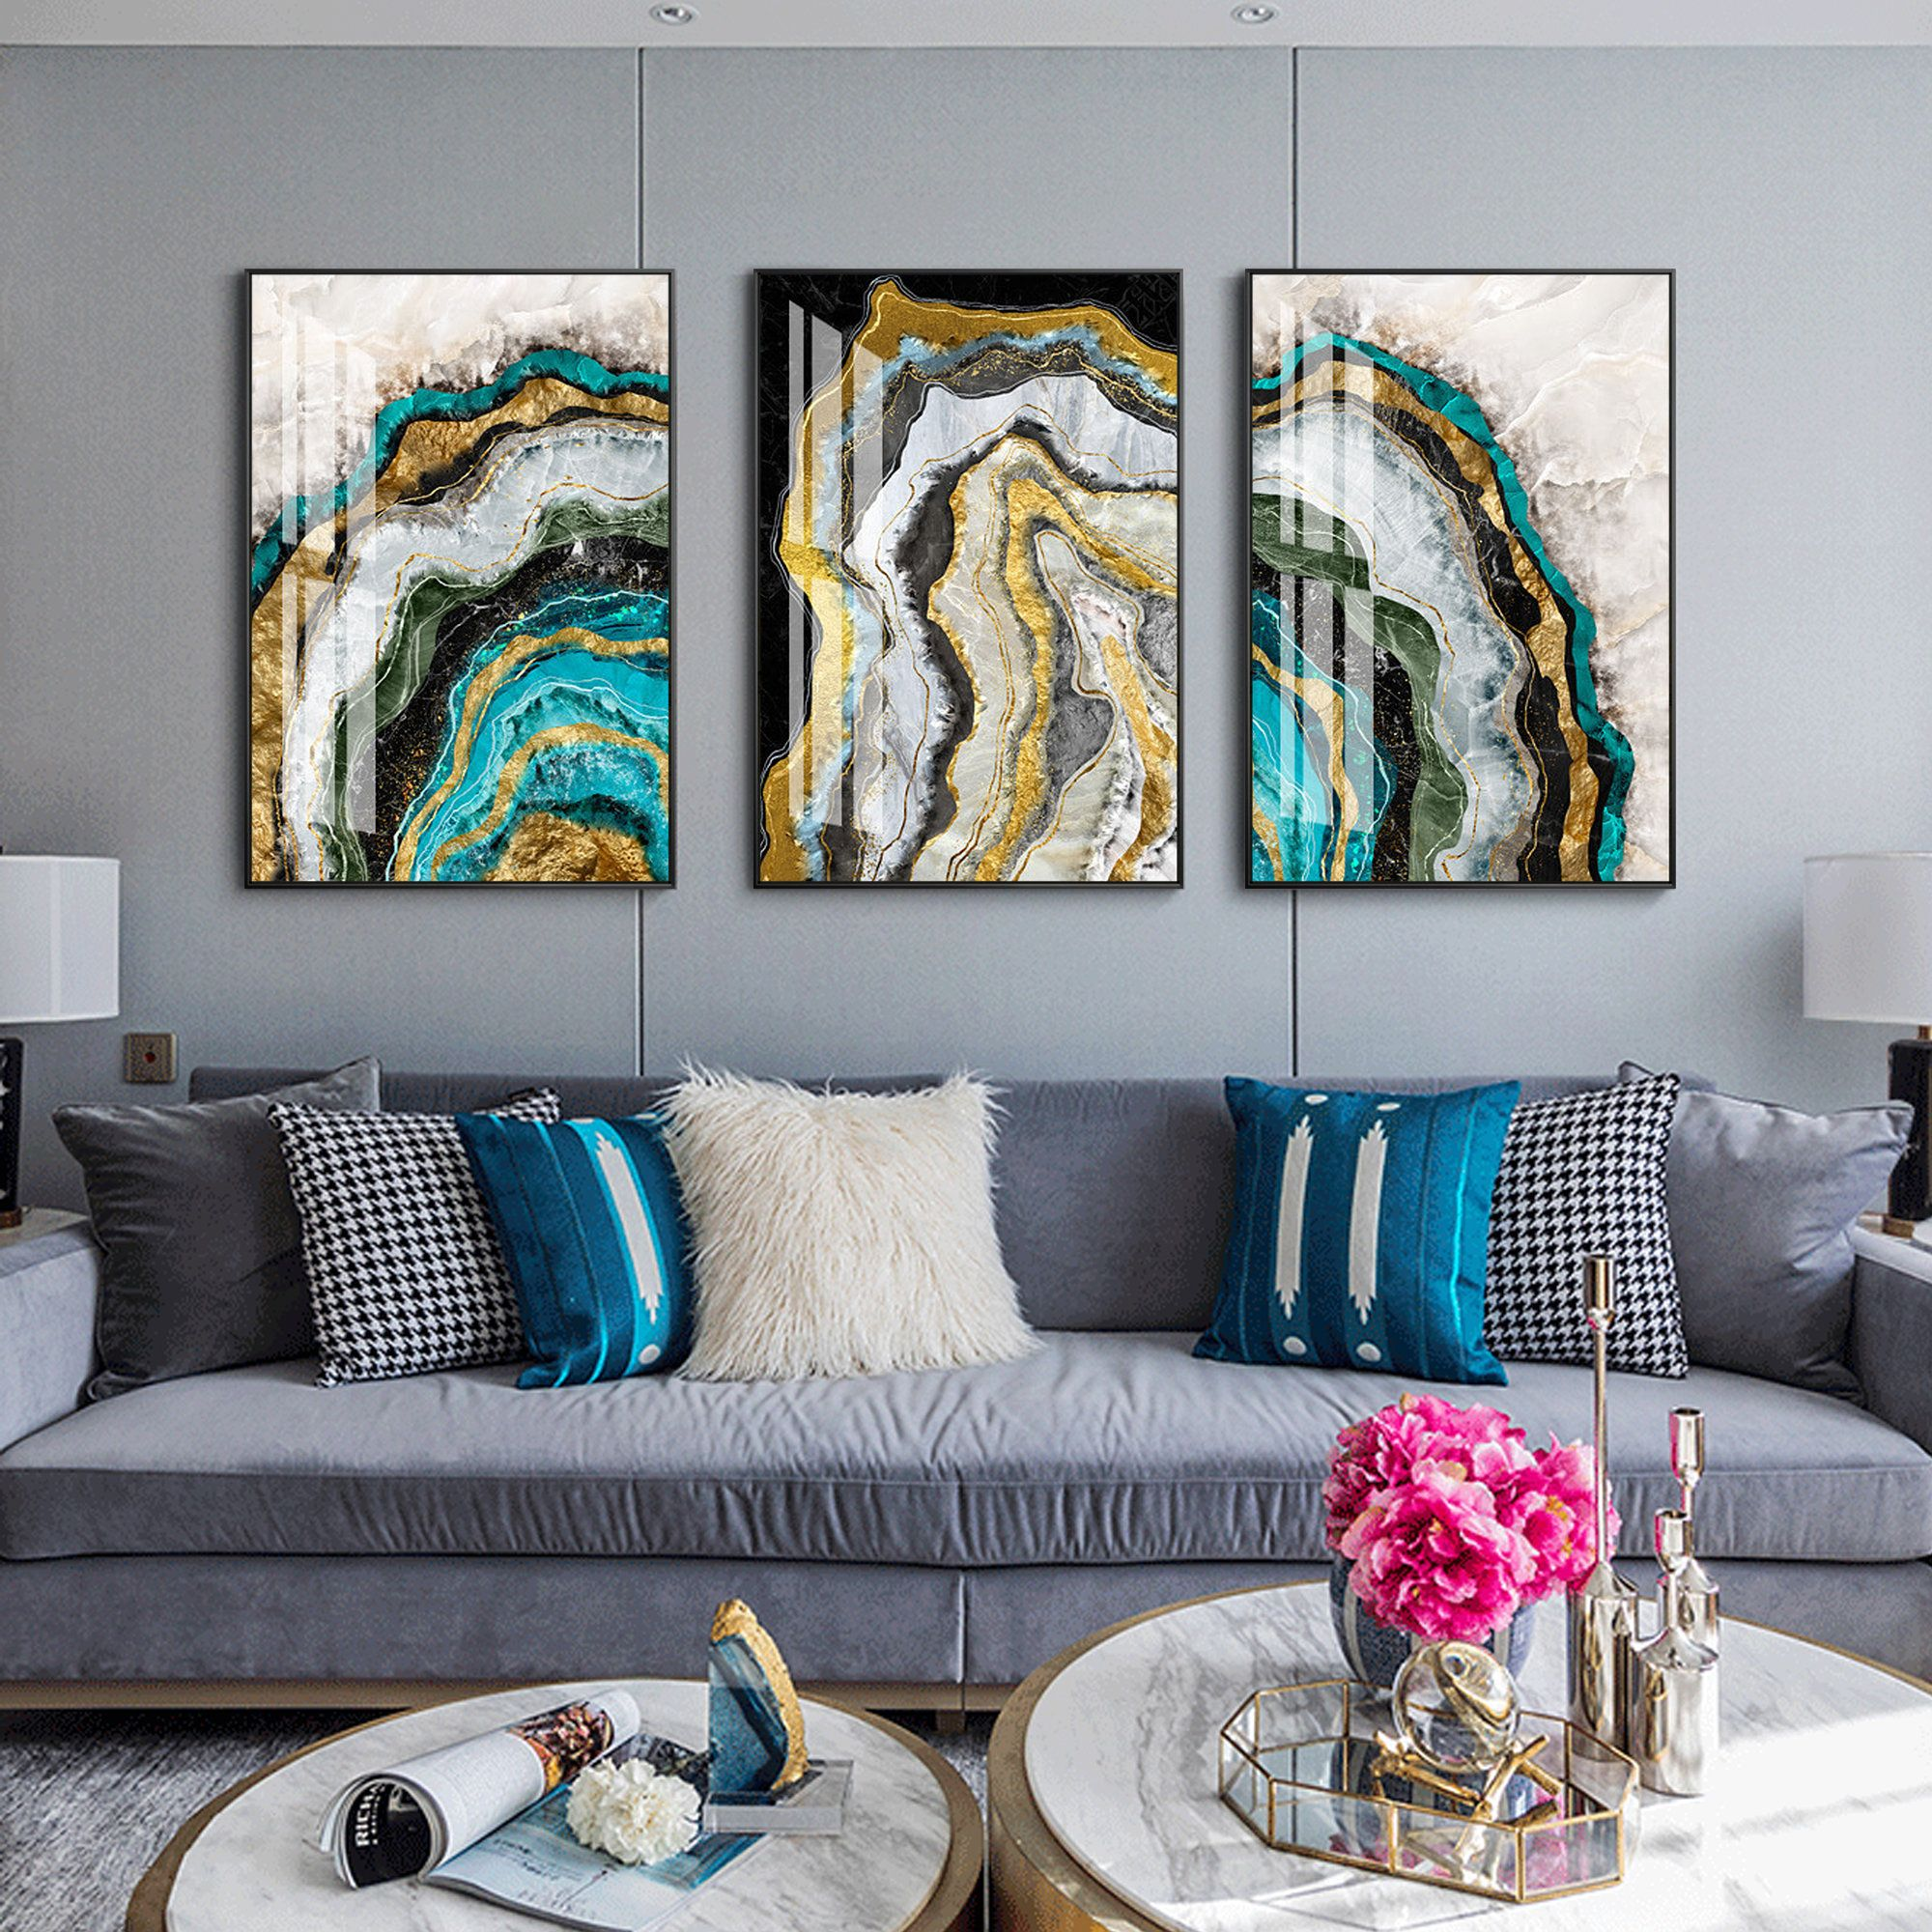 Set Of 3 Wall Art Gold Art Marble Wall Decor Teal Blue Etsy In 2020 Marble Wall Wall Art Painting Painting Frames